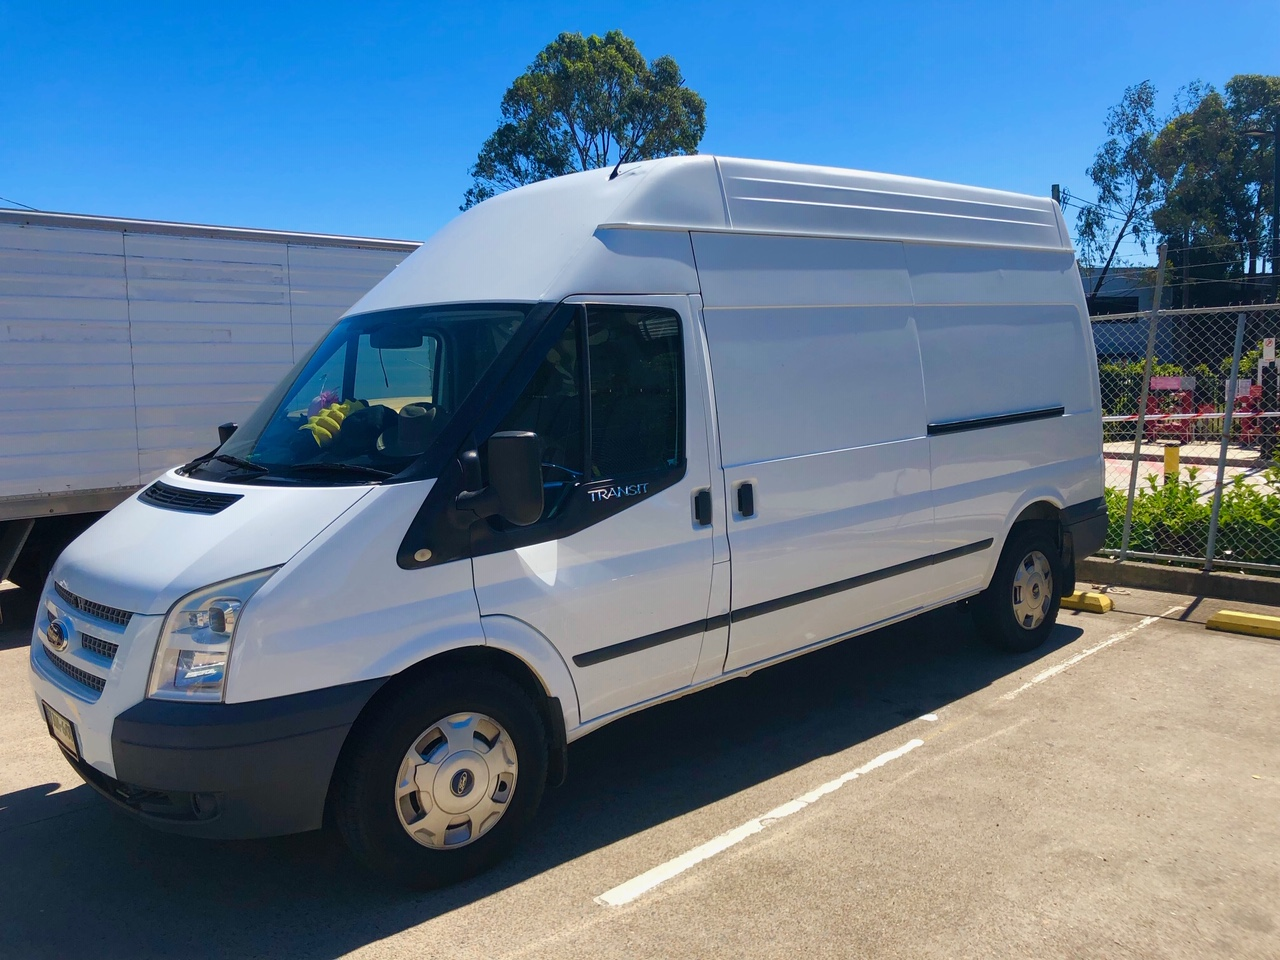 Picture of Cameron's 2012 Ford Transit